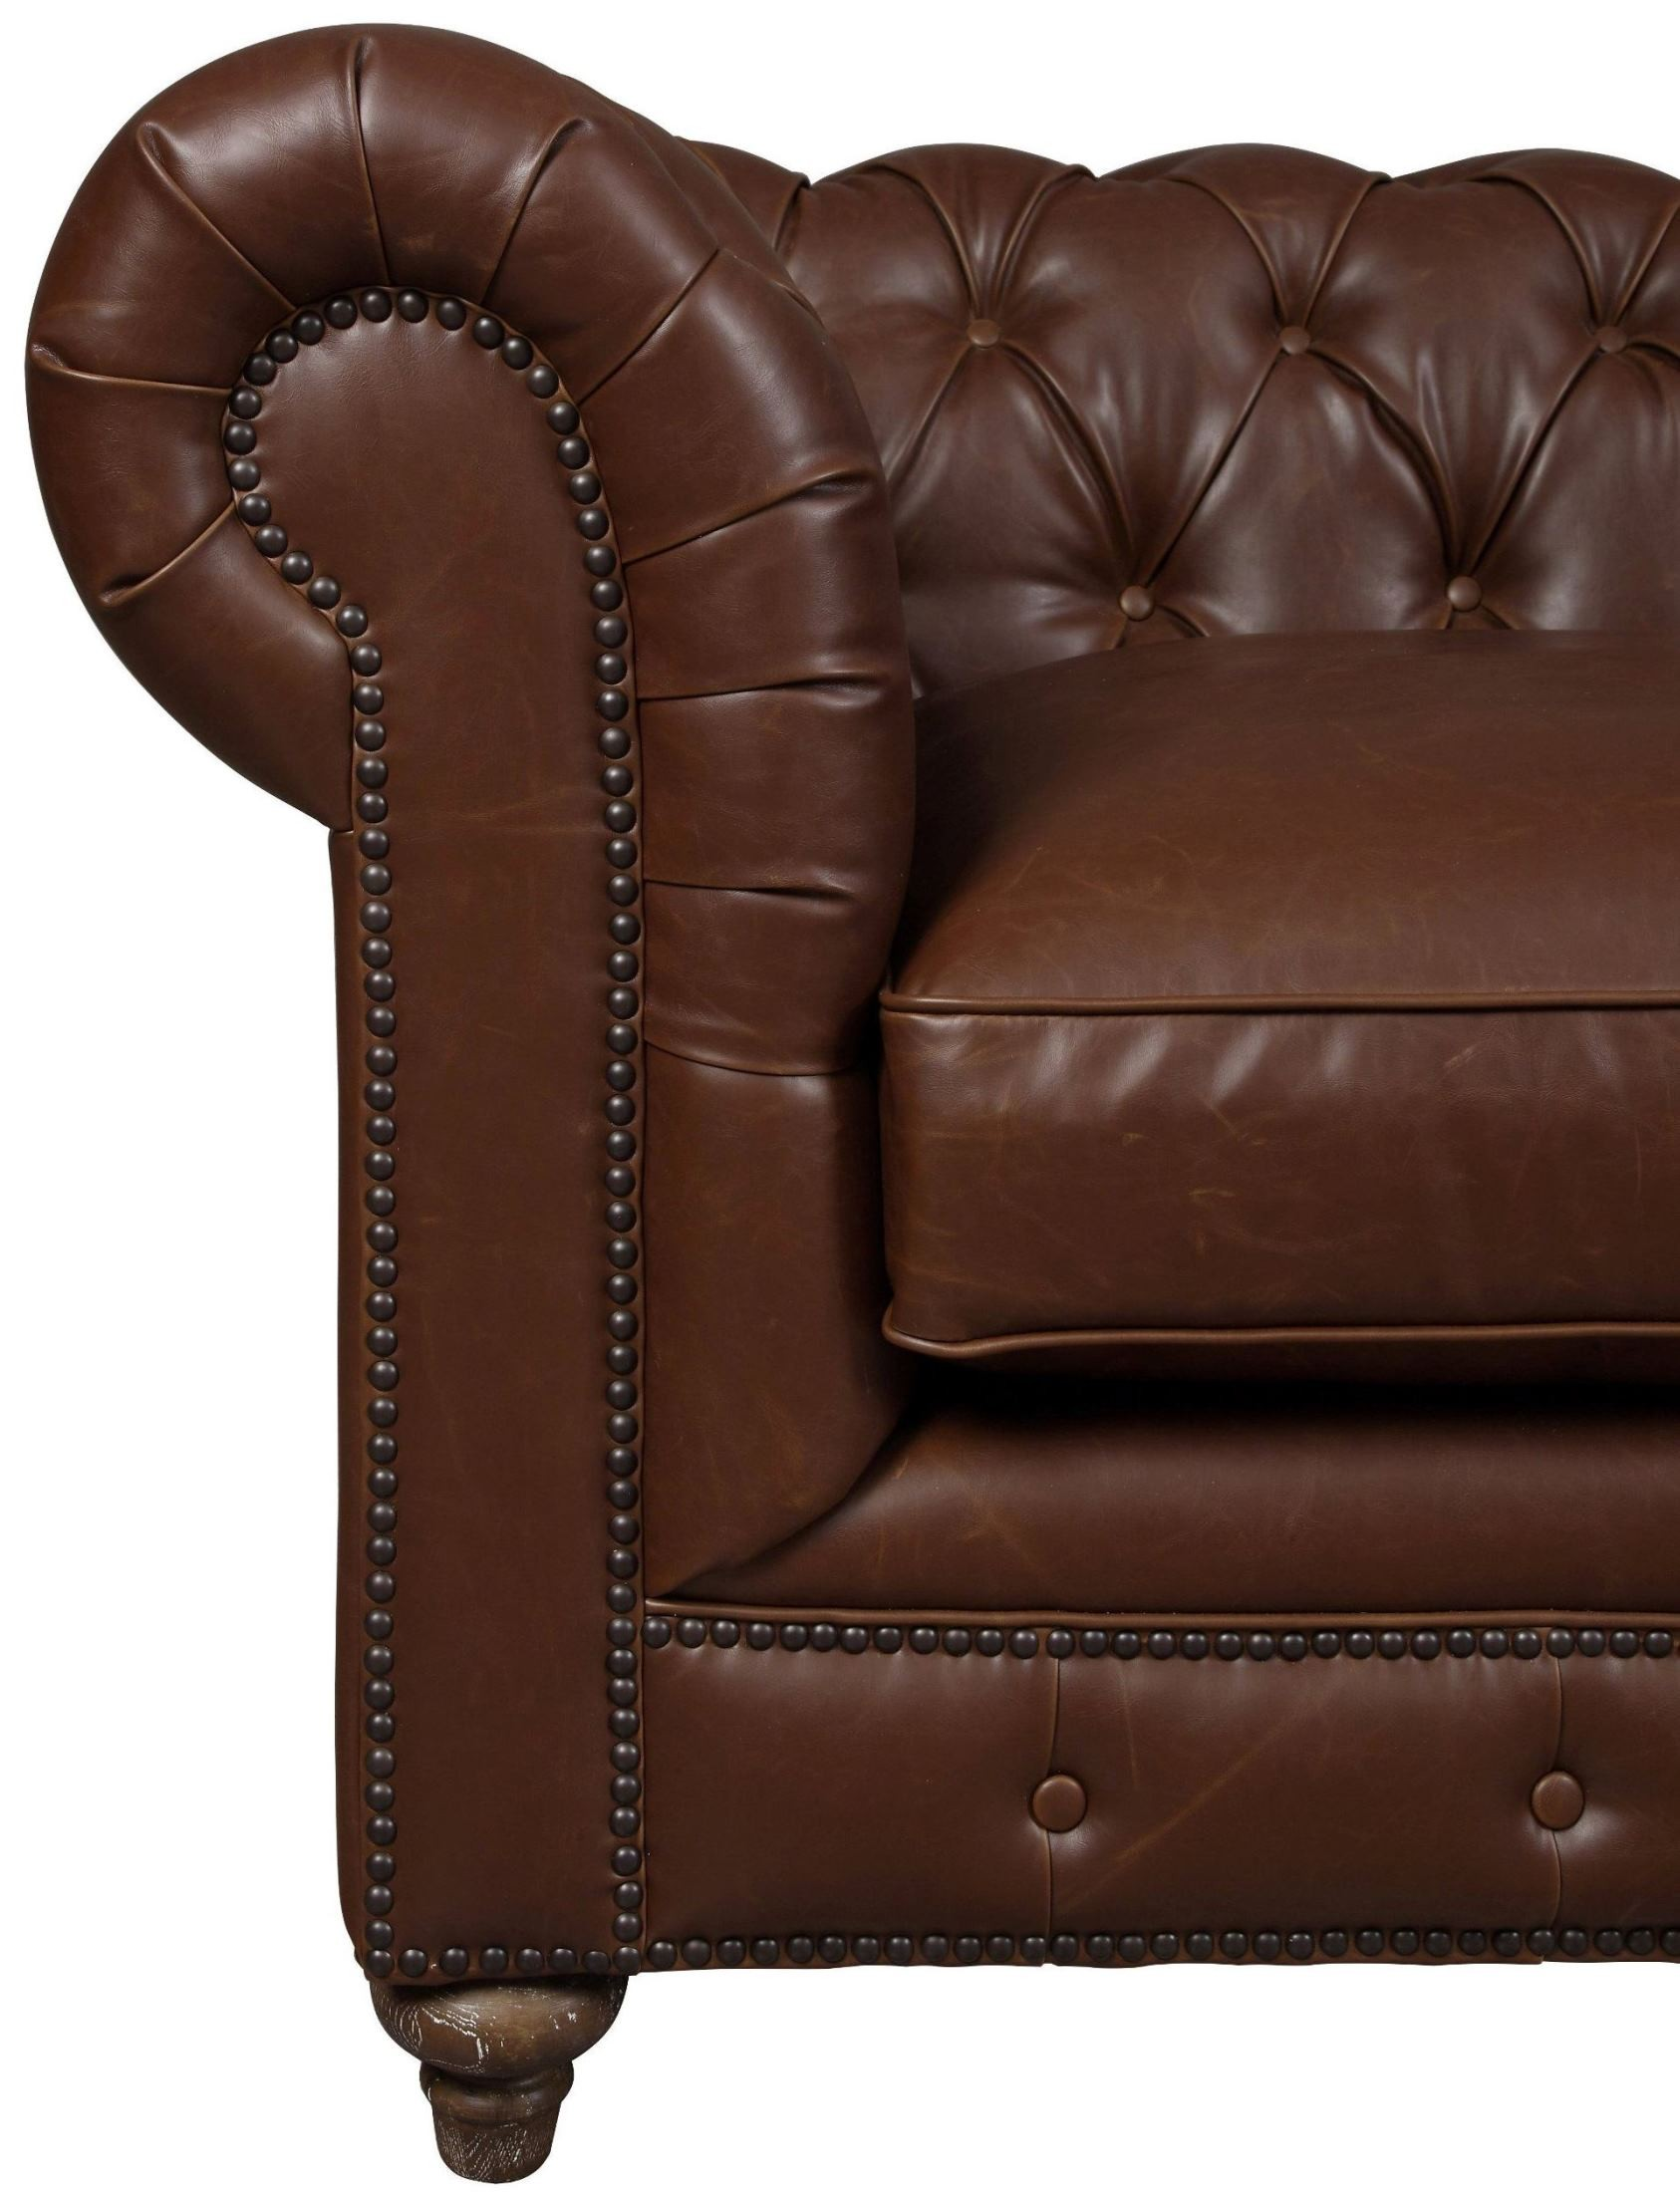 Brown Leather Couches Living Room Decor Red Accents: Durango Antique Brown Leather Sofa, S24-02, TOV Furniture